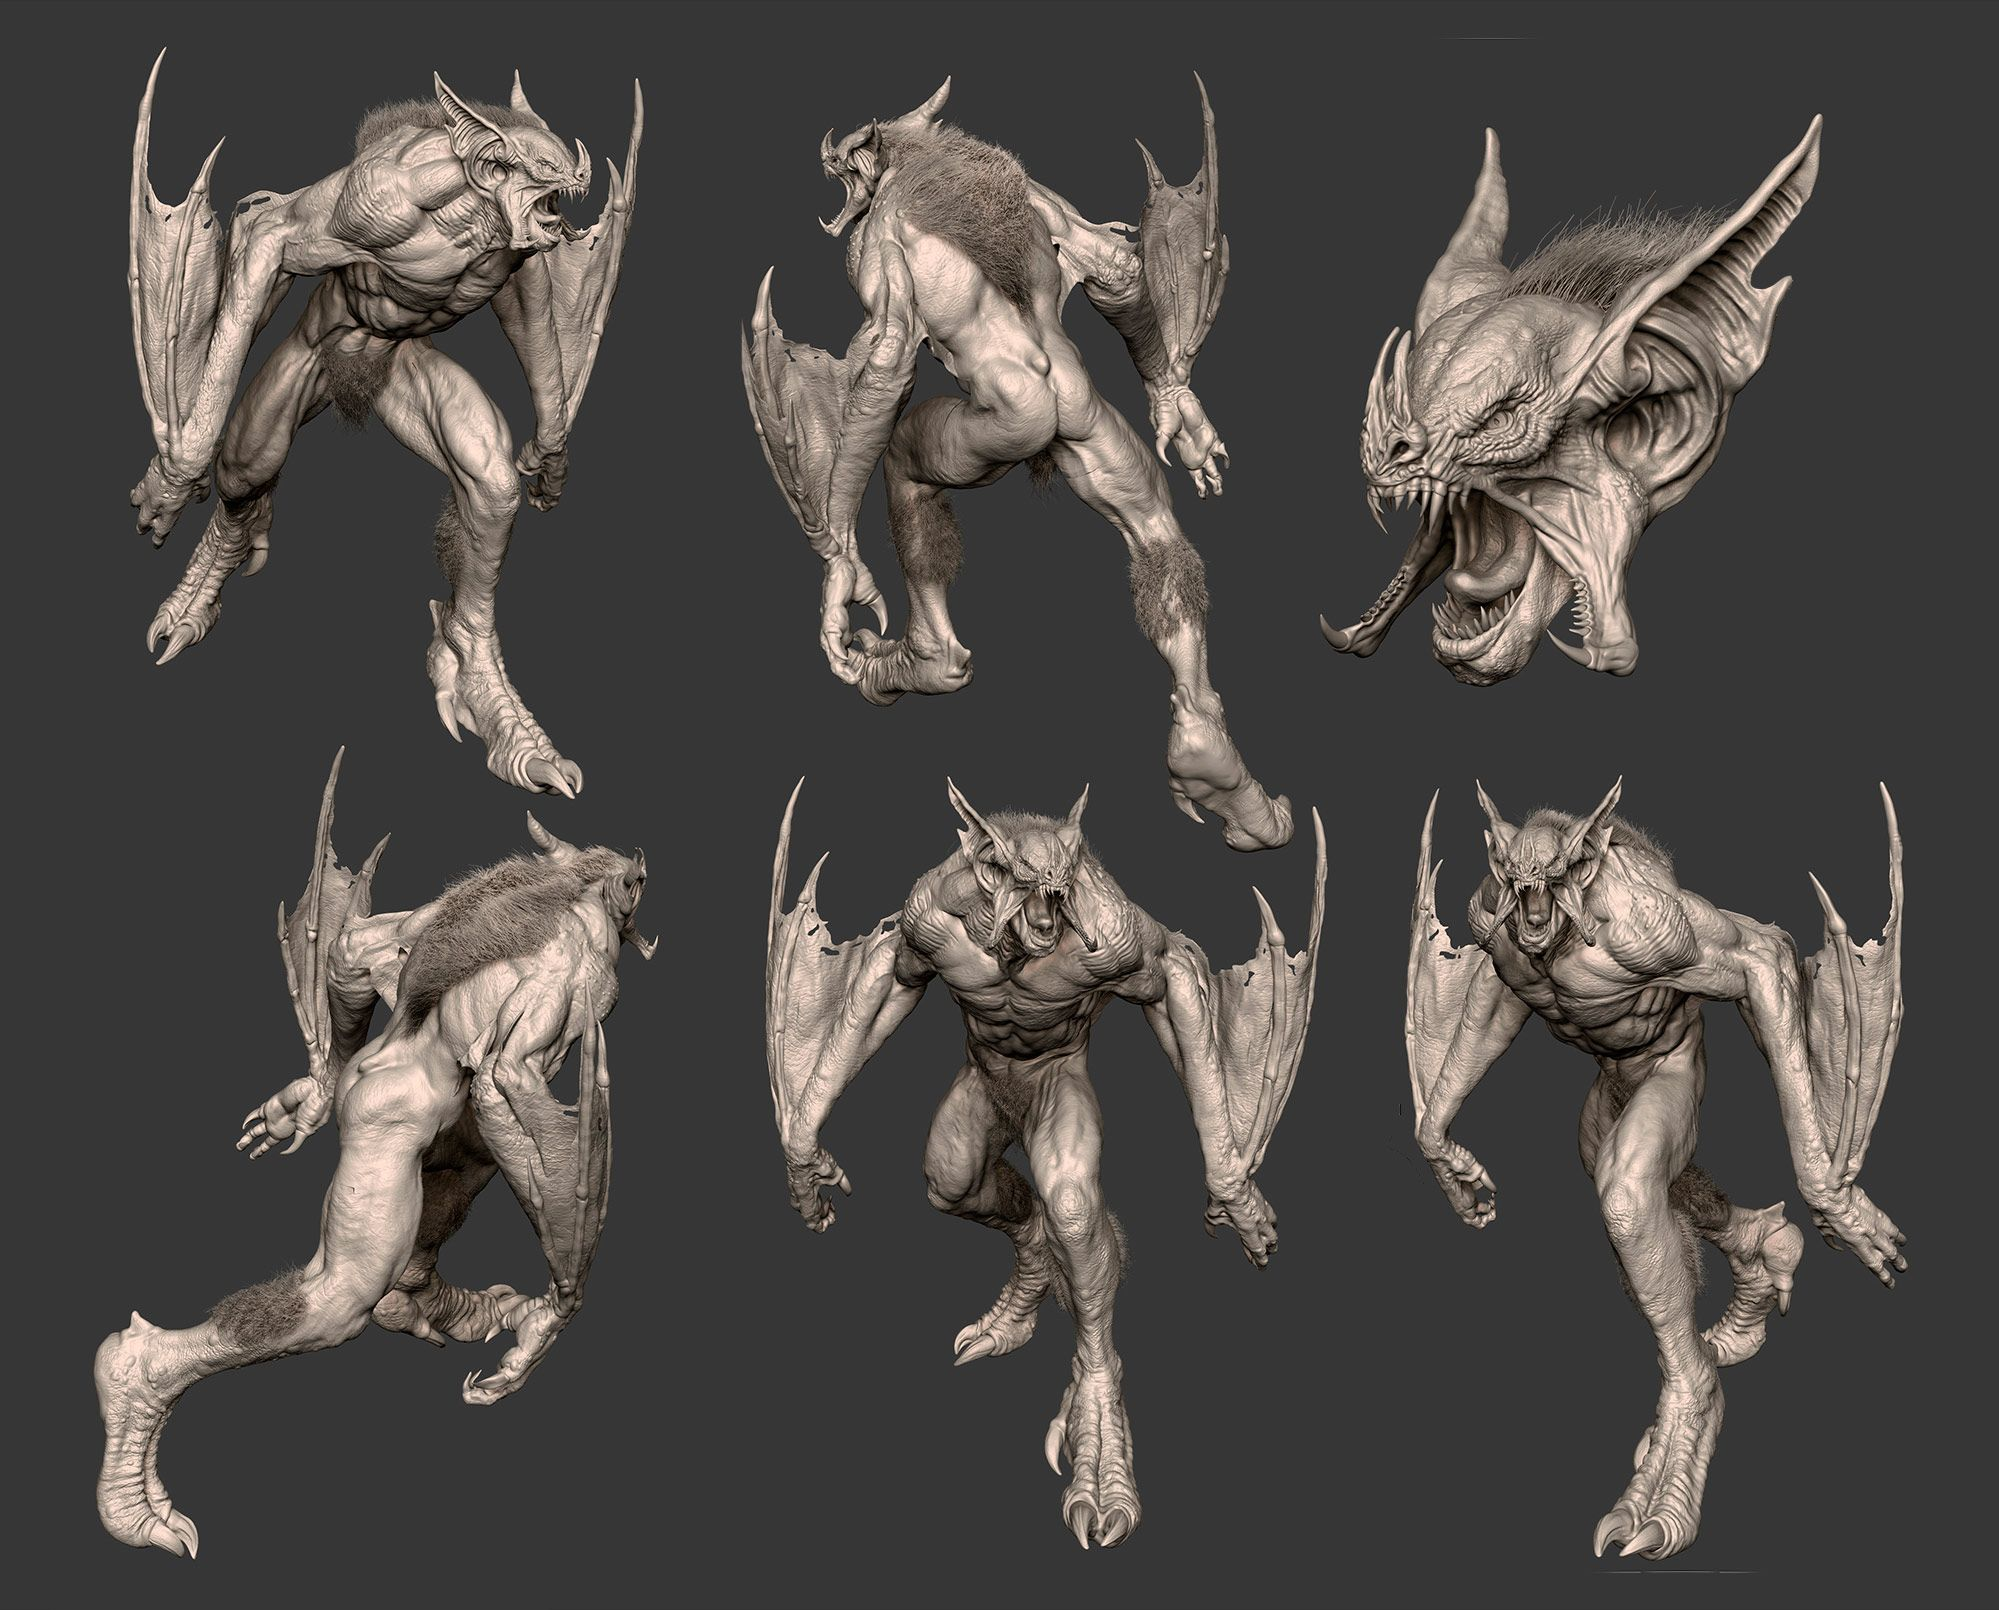 Cmivfx Zbrush Character Concept Design : Bat creature zbrush cg render renders